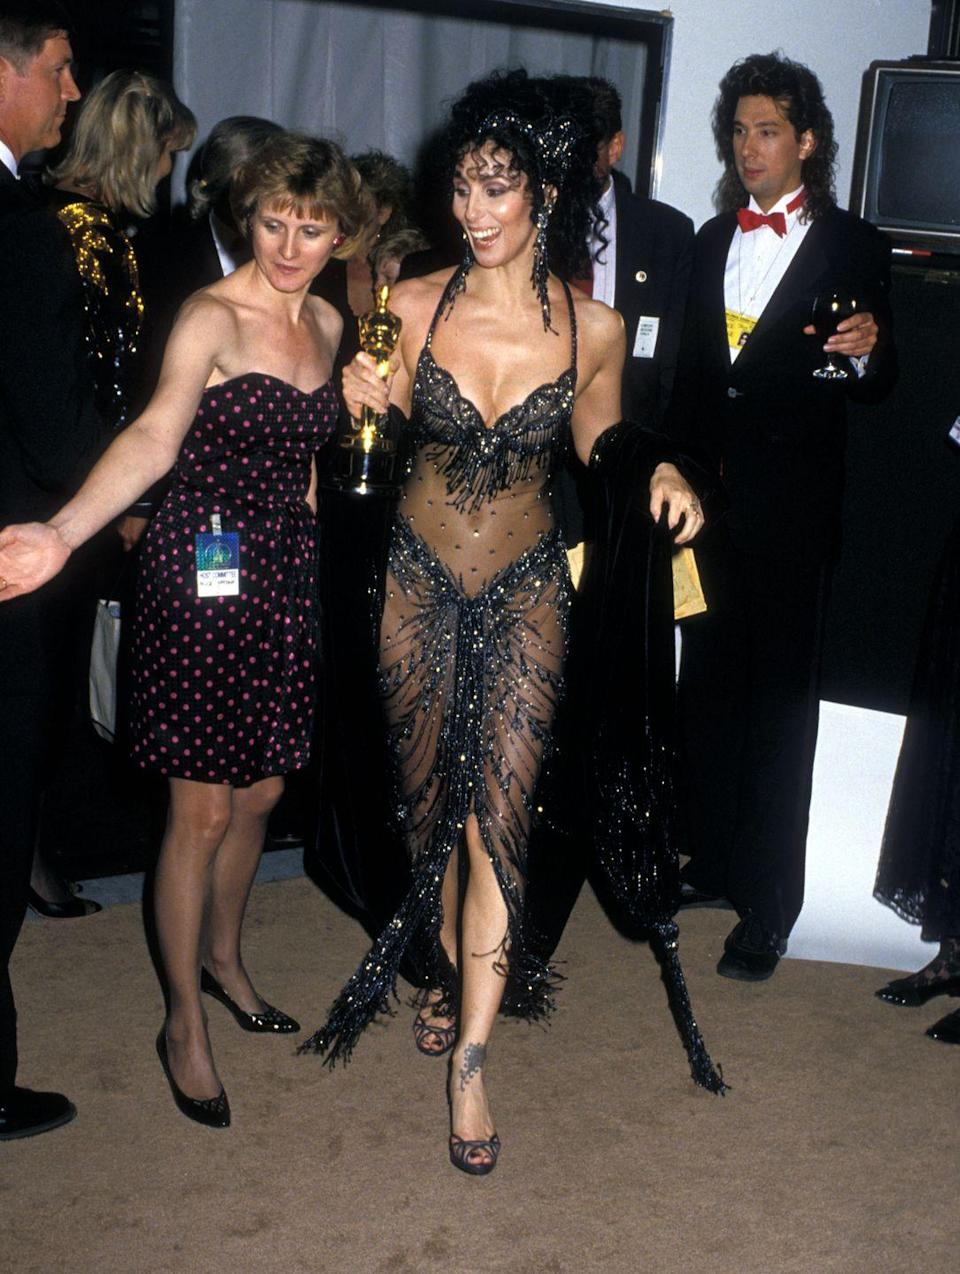 <p>The reigning queen of serving iconic looks was extra bold this year in a sheer Bob Mackie design that showed off, well, everything. To make the night even better, the star accepted the Best Actress award for her performance in <em>Moonstruck.</em></p>